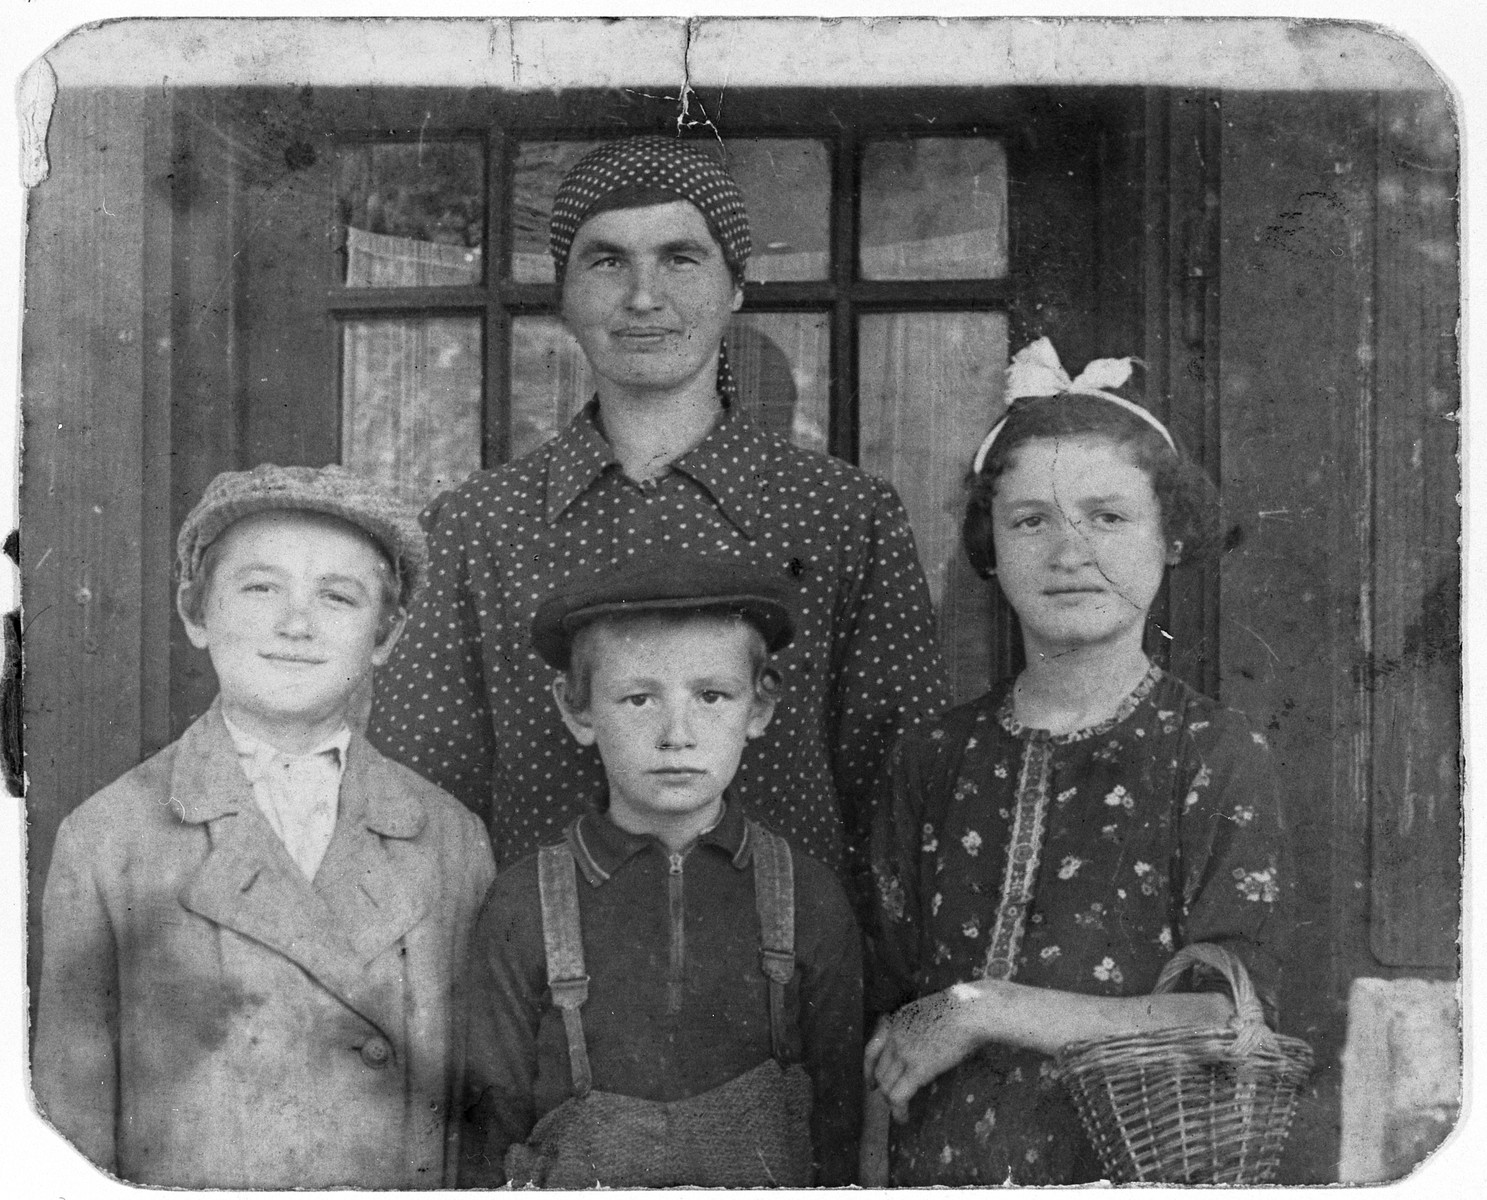 A religious Hungarian Jewish woman poses with her three youngest children.  Pictured are Rosi Zelmonovits (back) and her children (left to right) Moritz, Volwi and Eva.